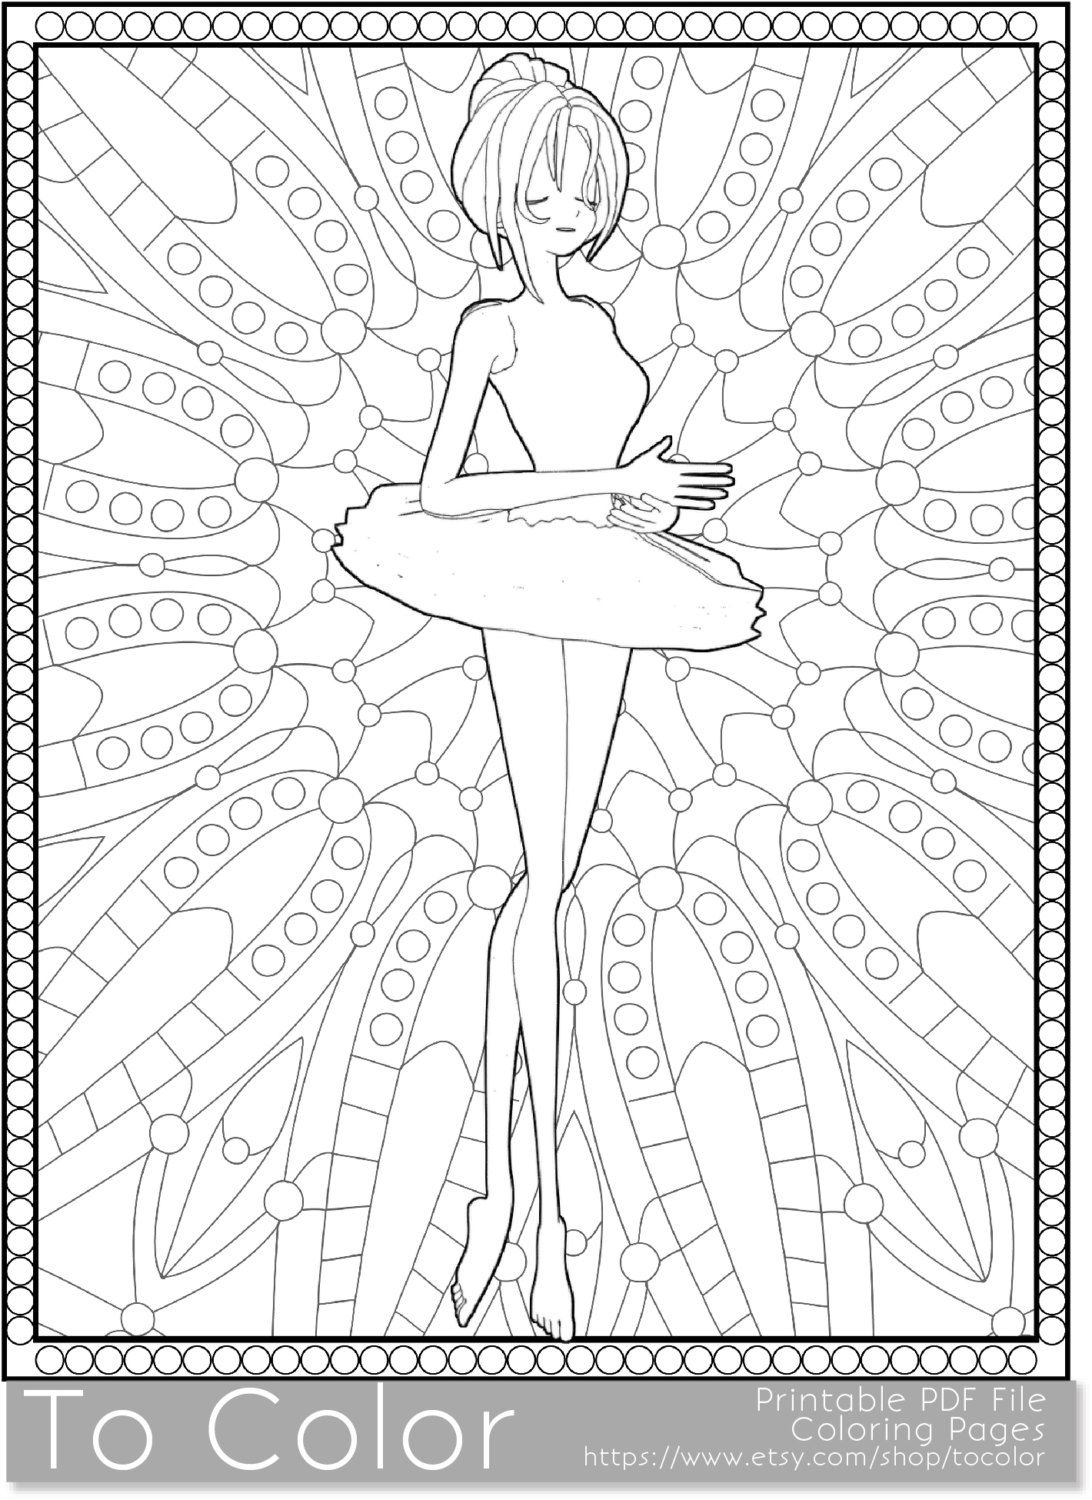 Printable coloring pages grown ups - Ballet Printable Coloring Pages For Adults Ballet Girl Tutu Pdf Jpg